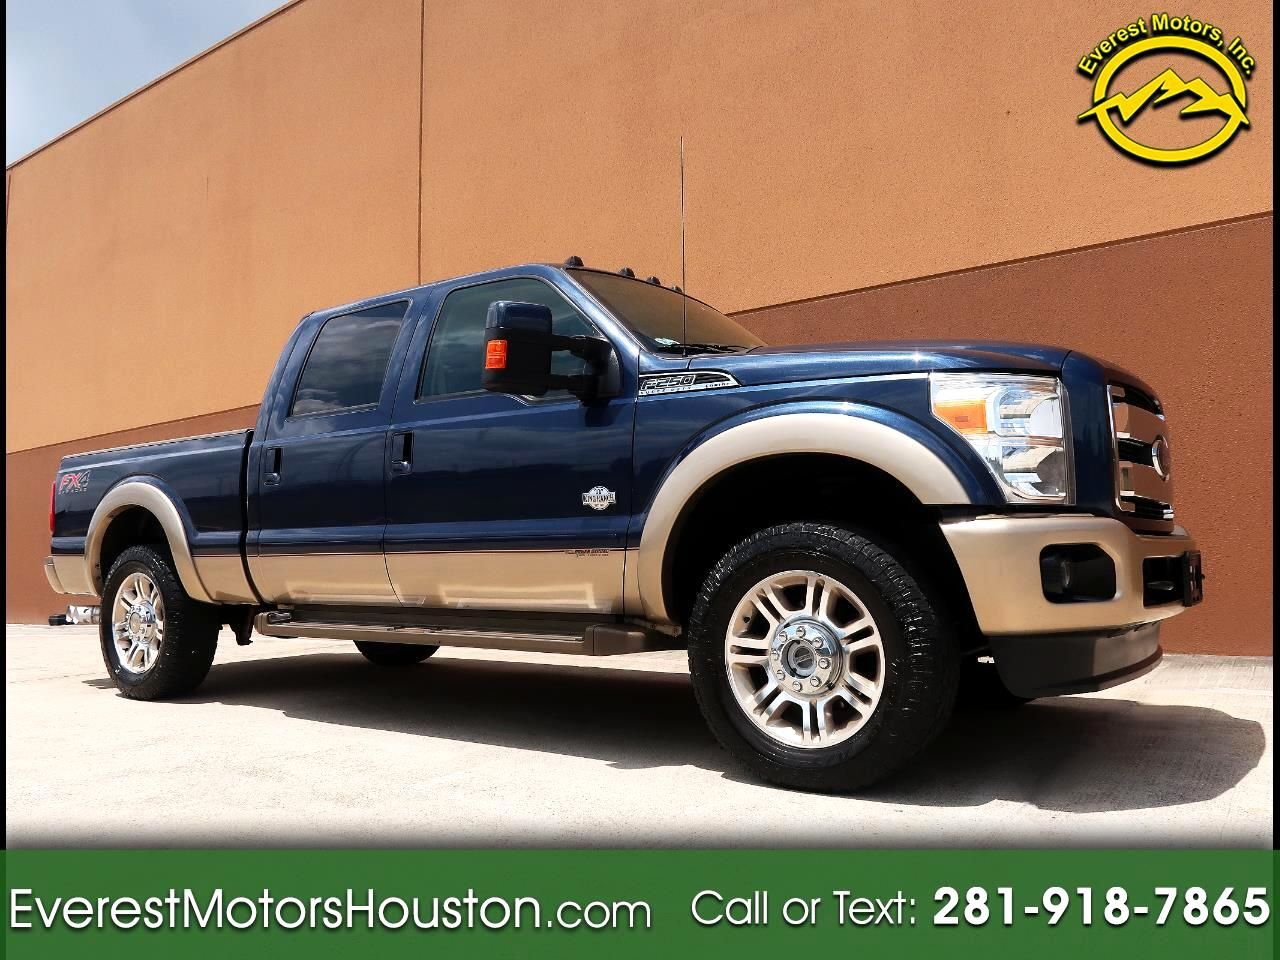 2014 Ford F-250 SD KING RANCH CREW CAB SHORT BED 4WD NAV CAM ROOF